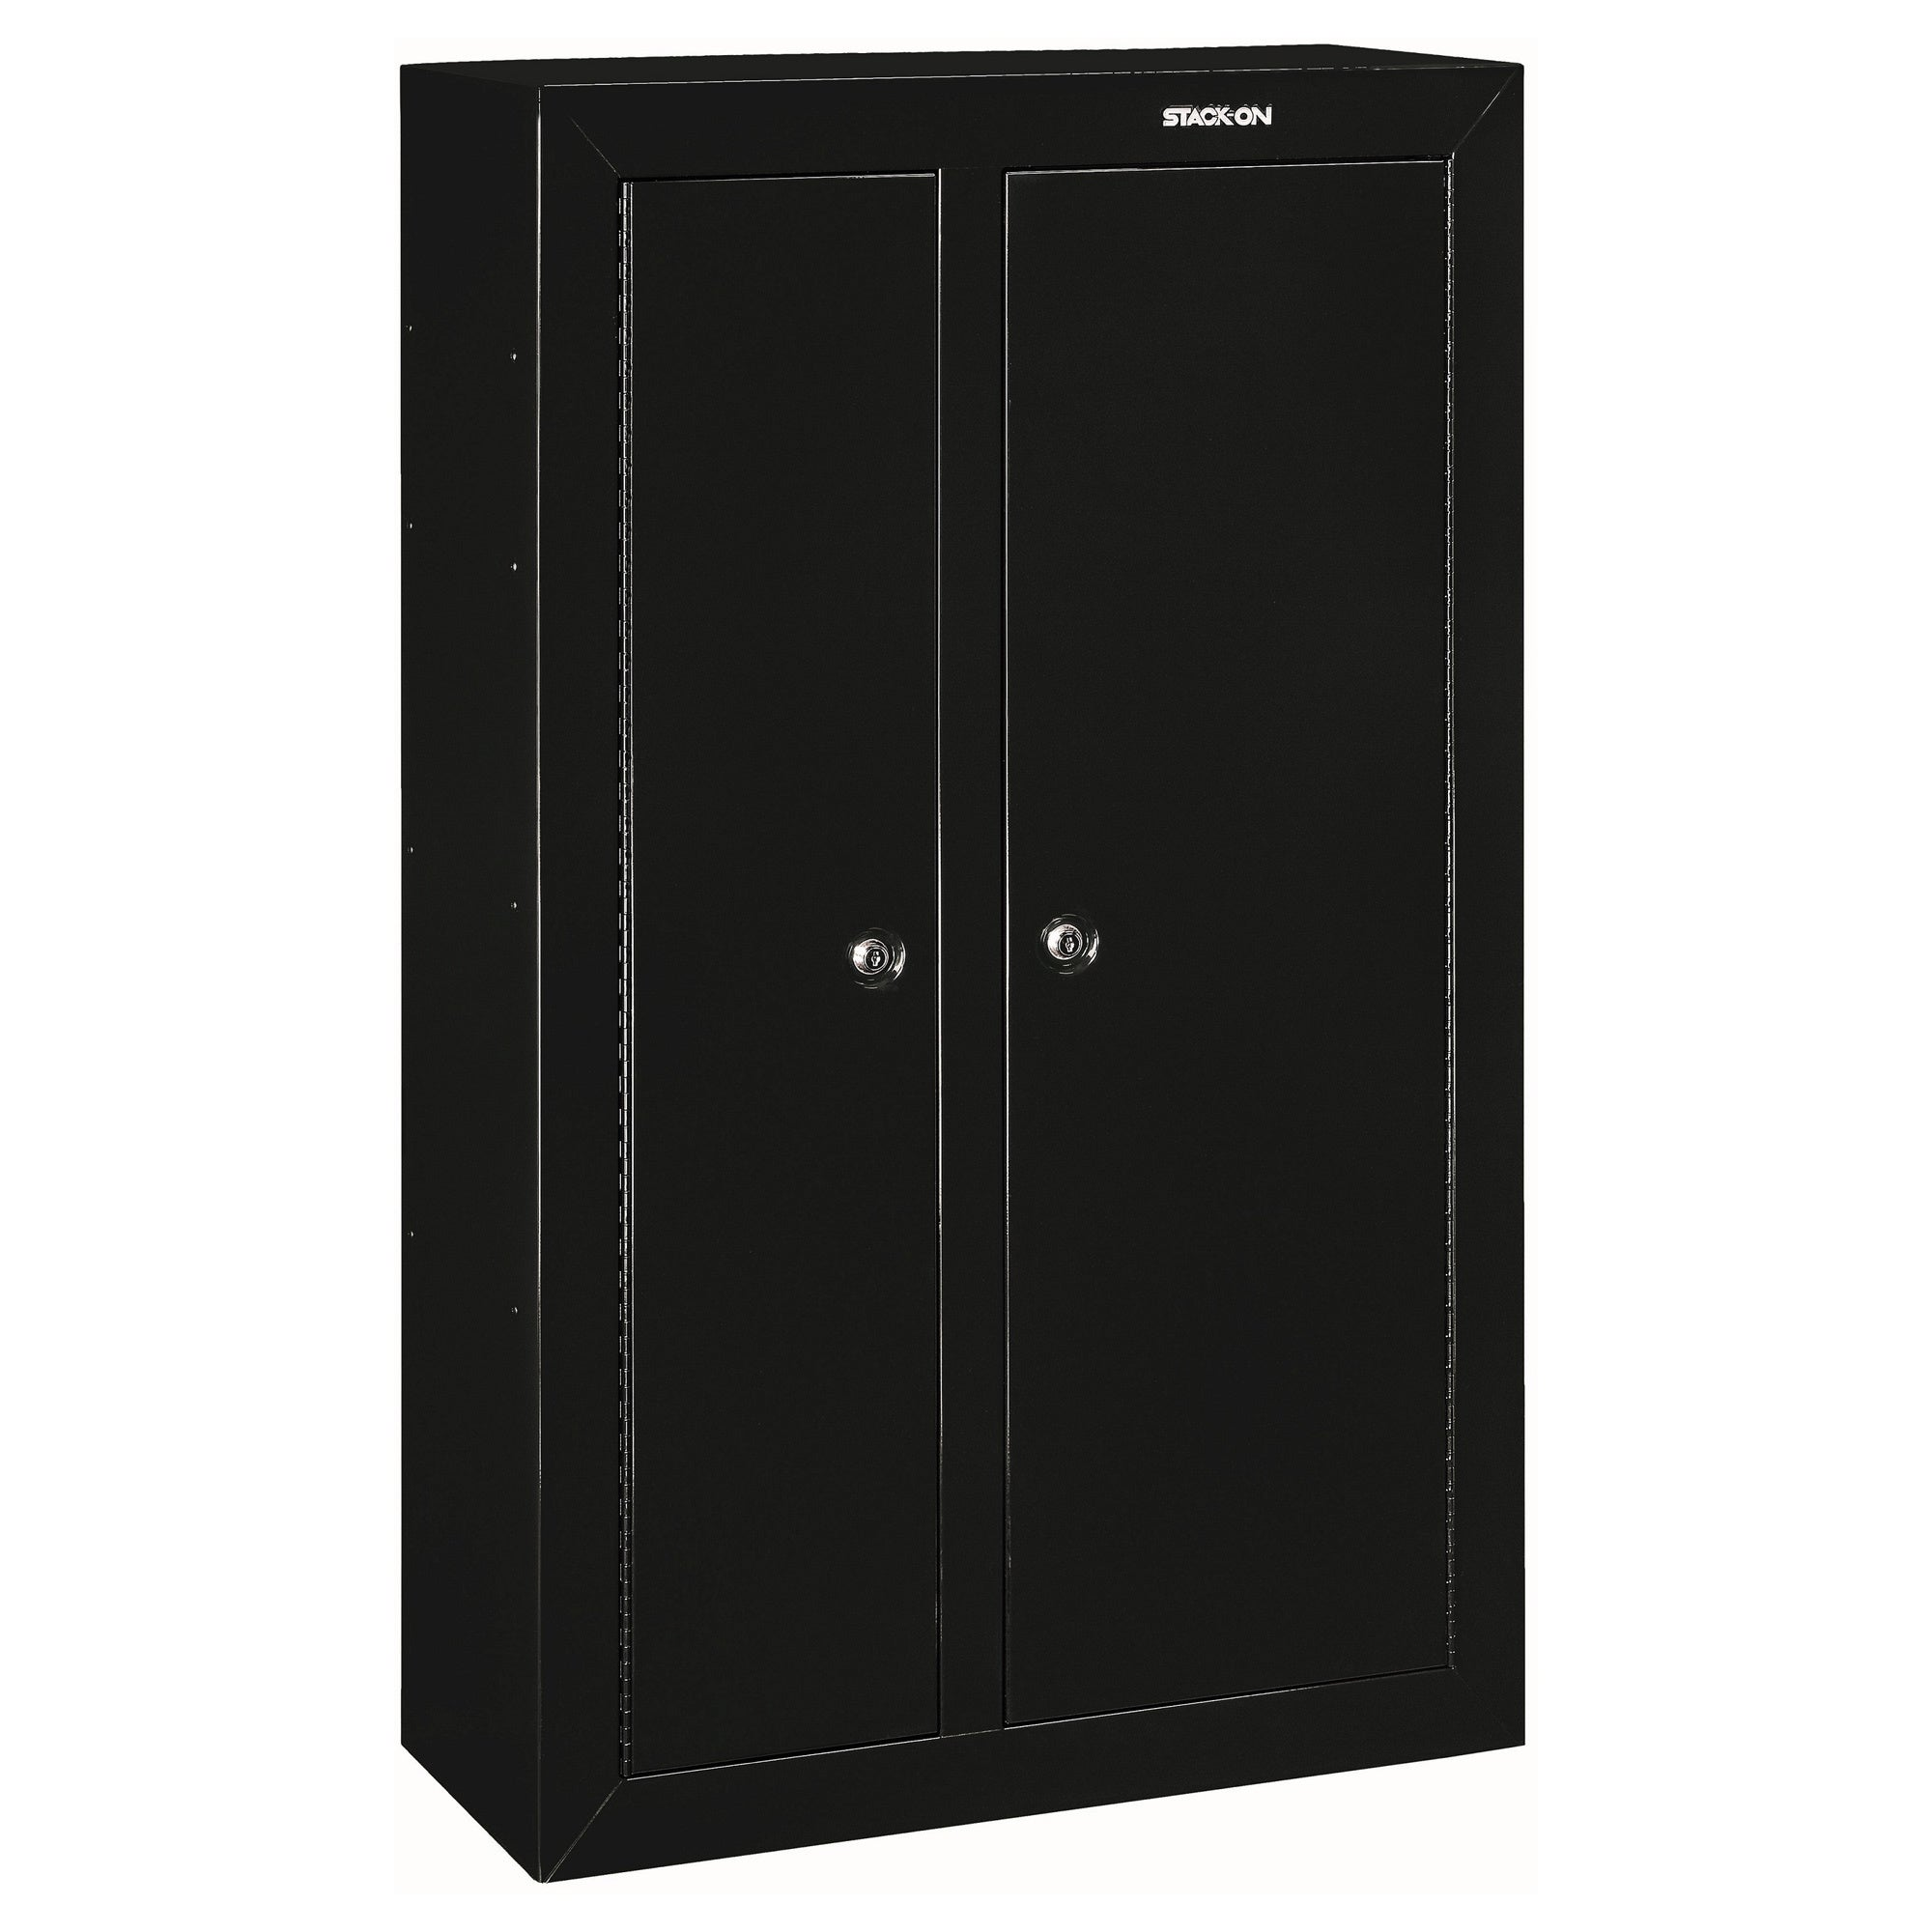 Featured for 10 gun double door steel security cabinet